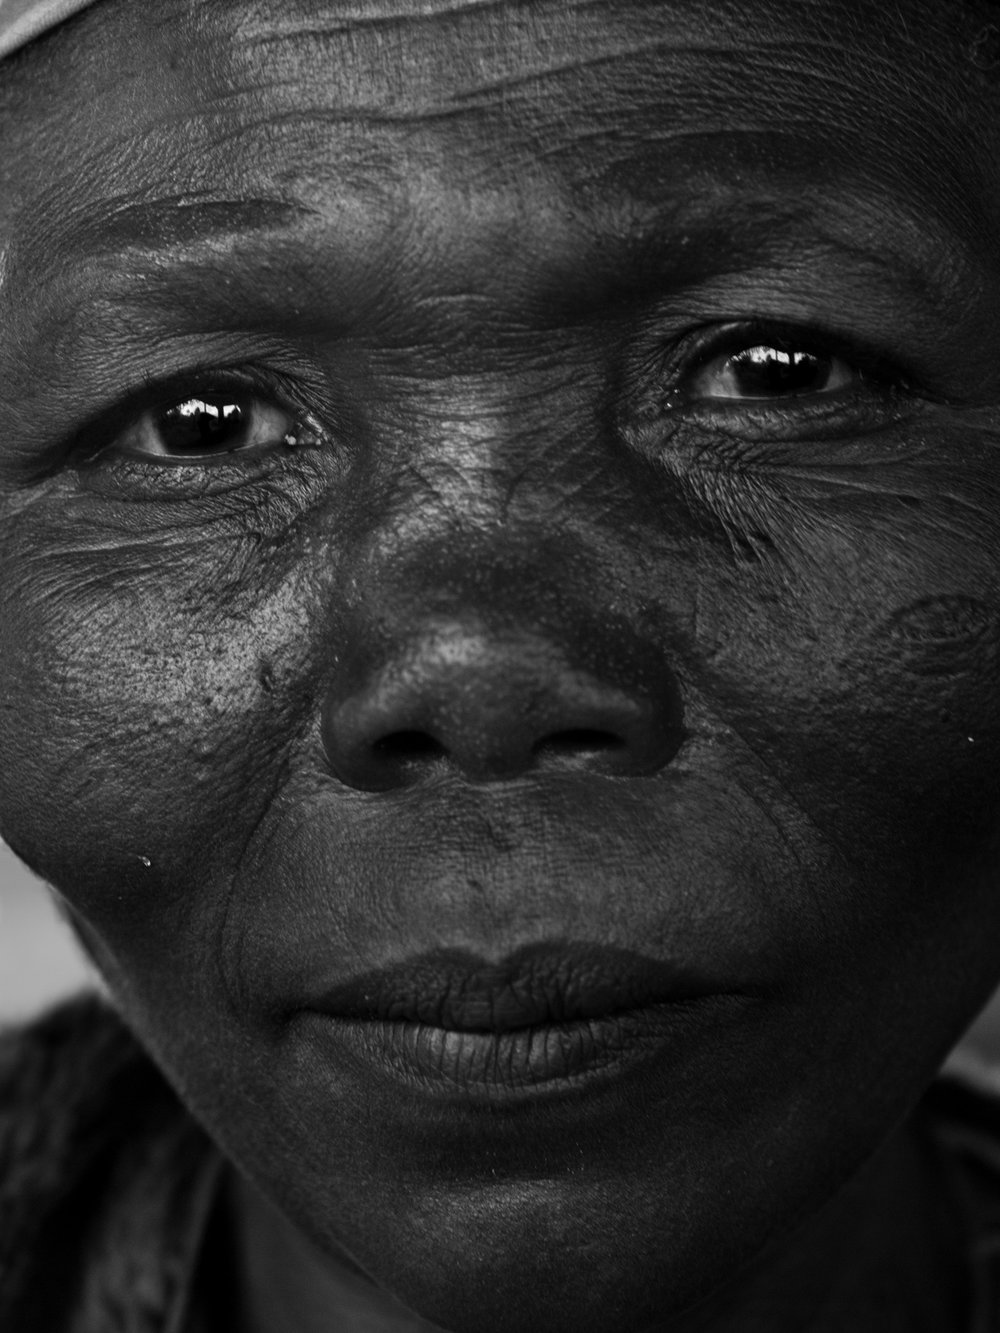 Emiliano Tidona_Series Nord Kivu Portraits_Untitled 5.jpg